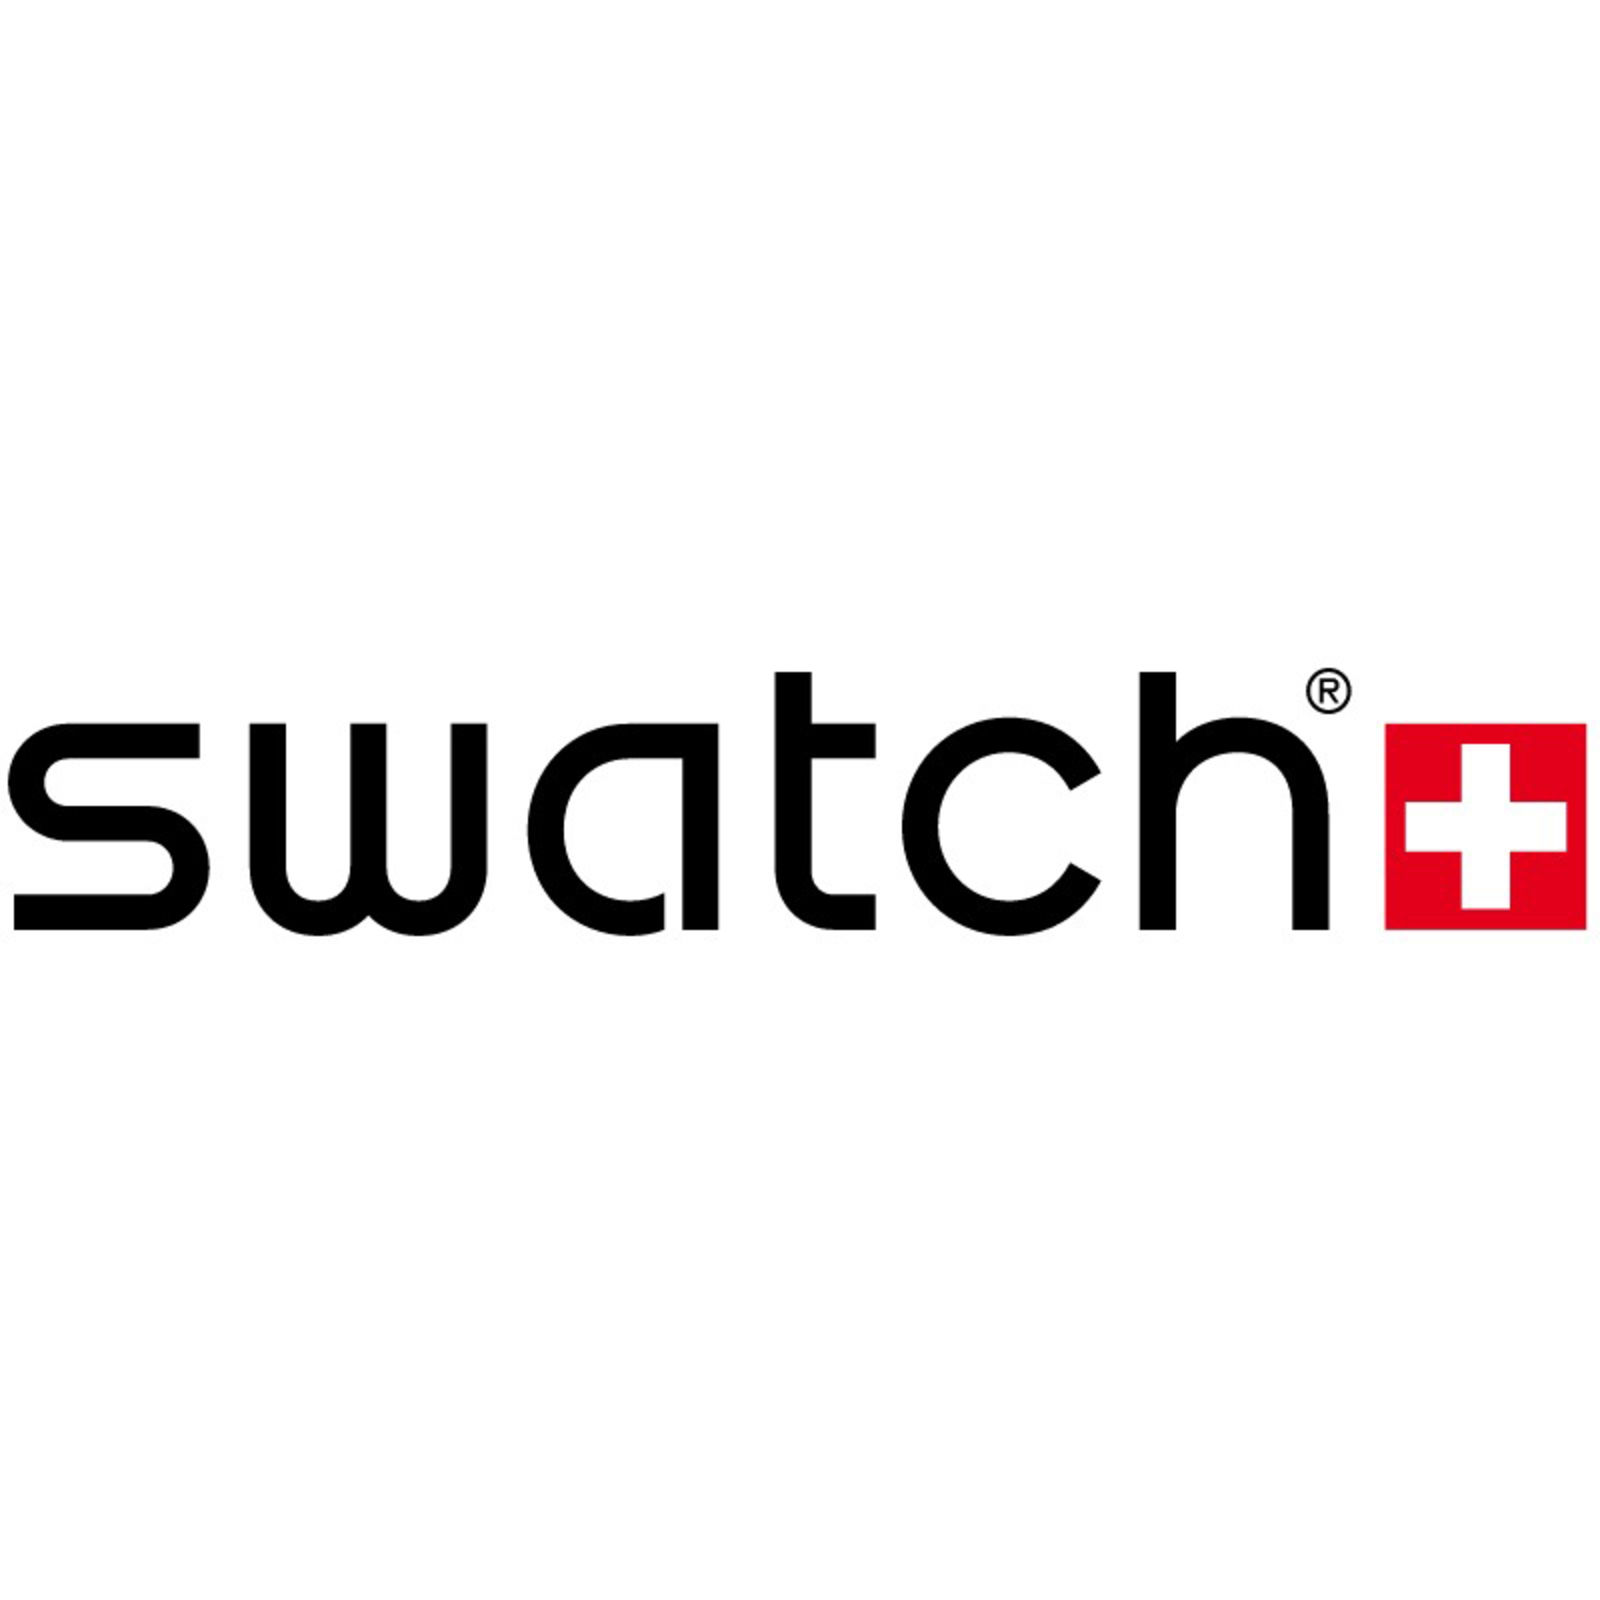 SWATCH (Image 1)